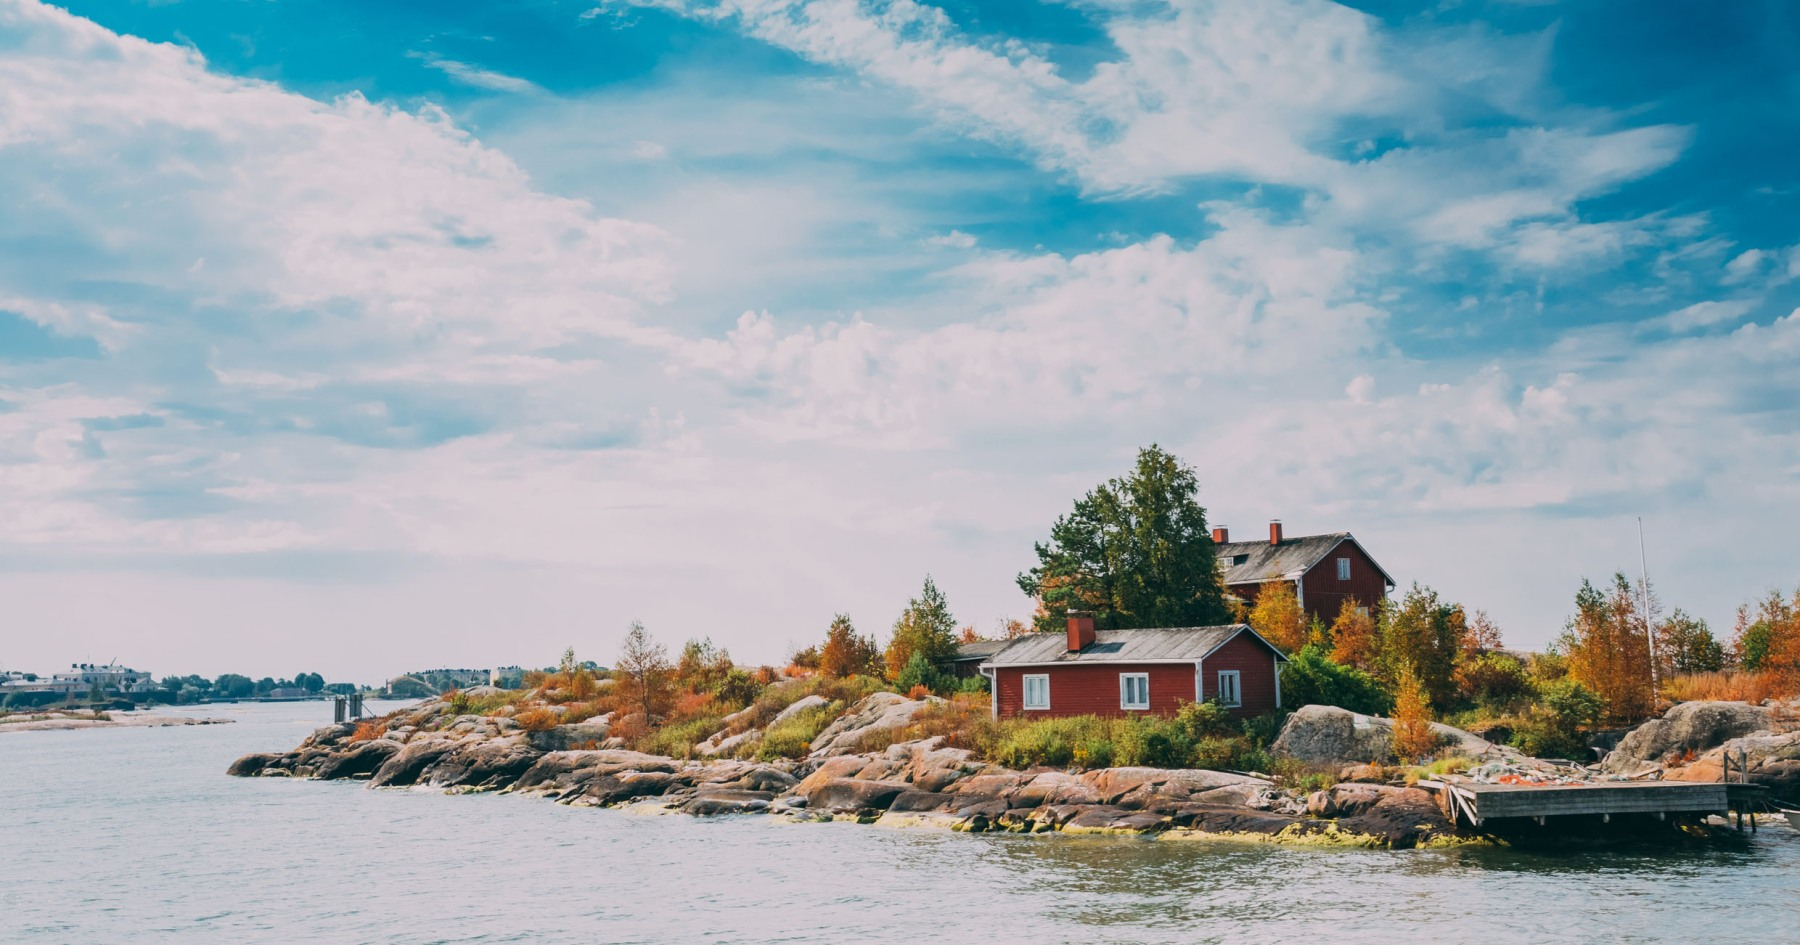 Free Five-Day Stopover in Finland? What the Helsinki.